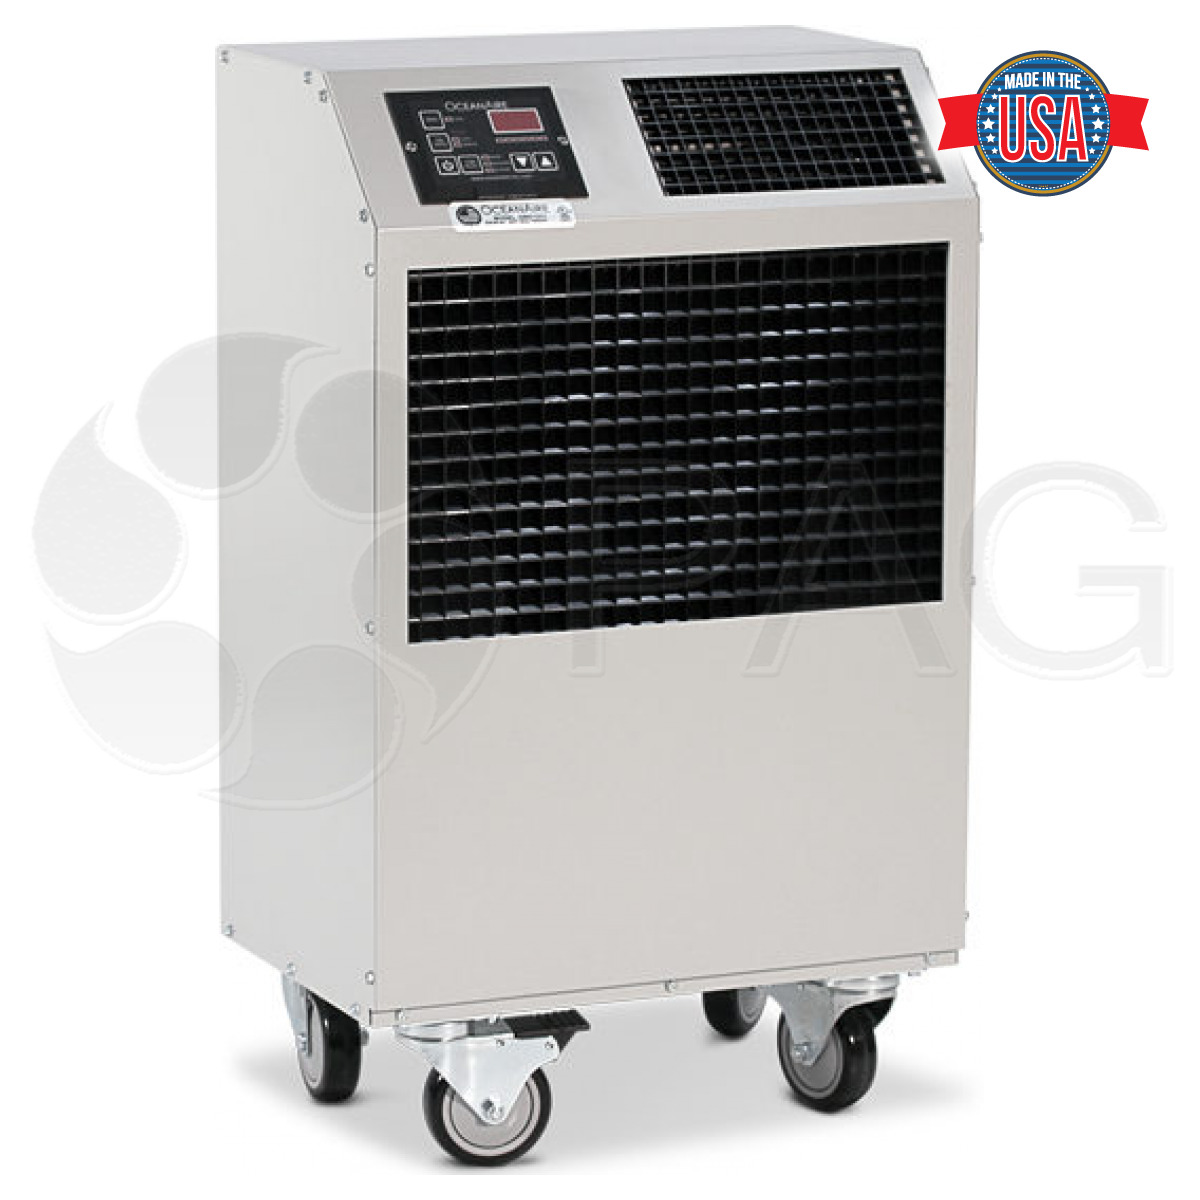 OceanAire+OWC1211+water-cooled+spot+cooler